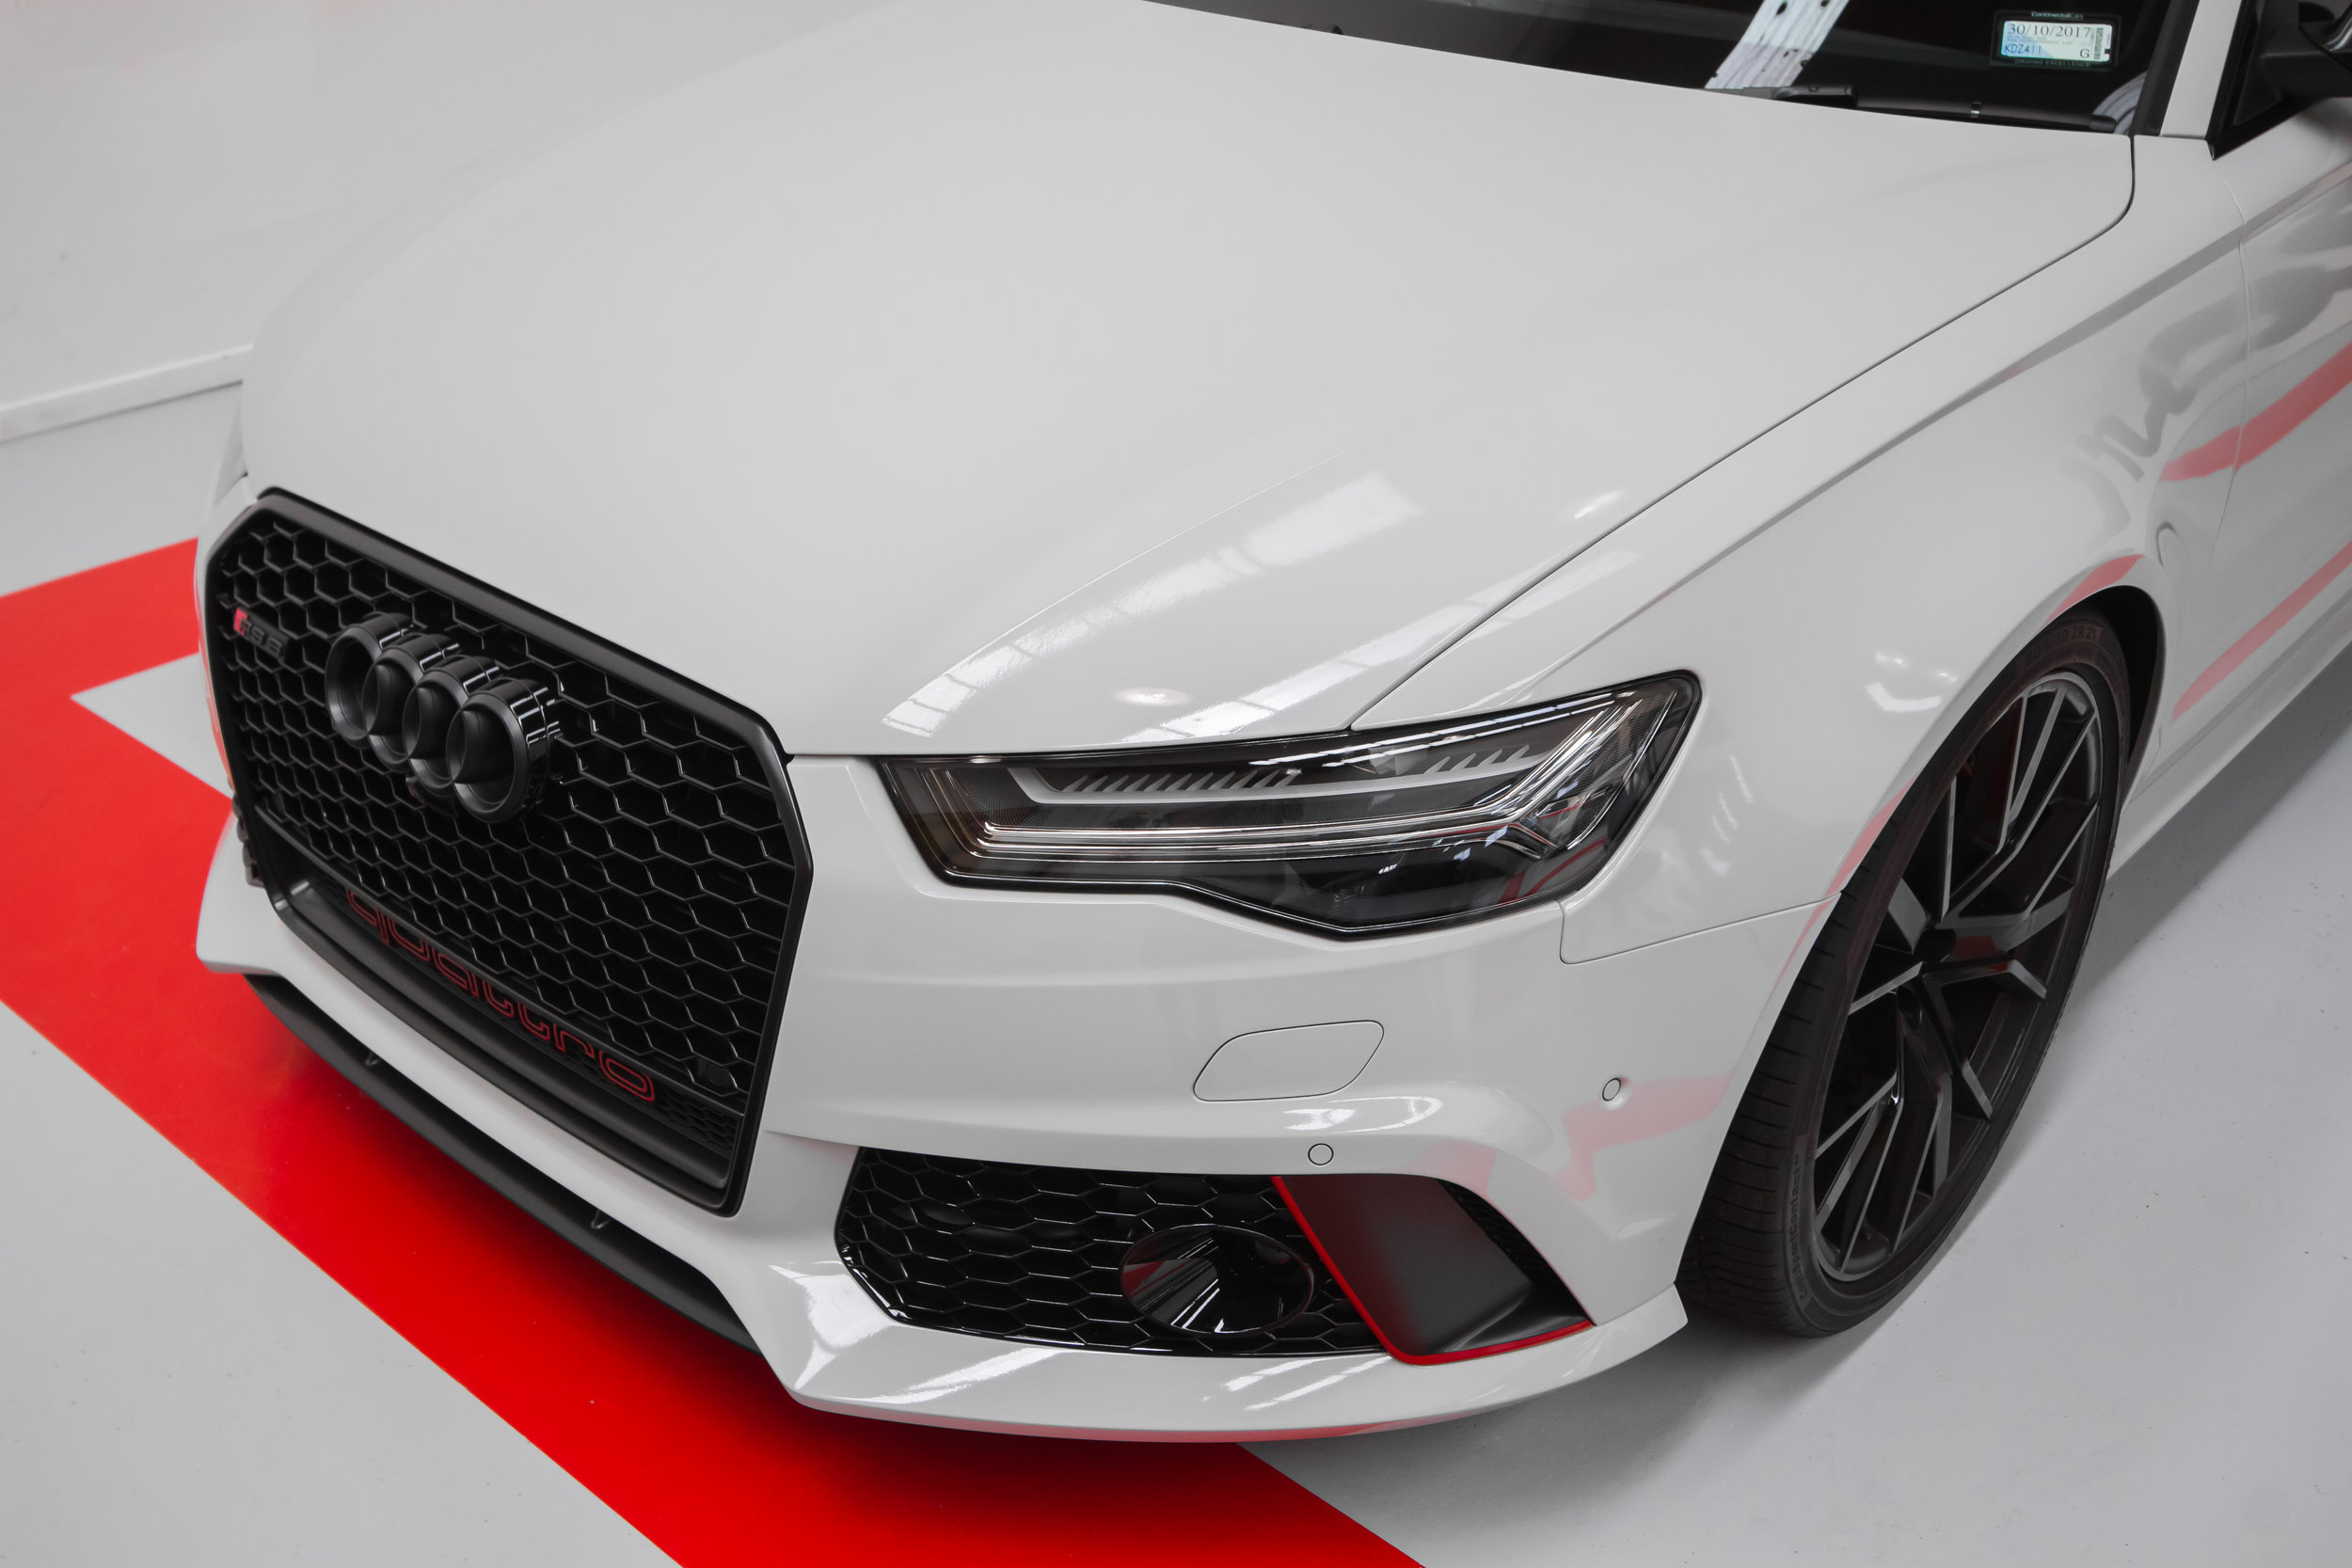 RS6 Front headlight